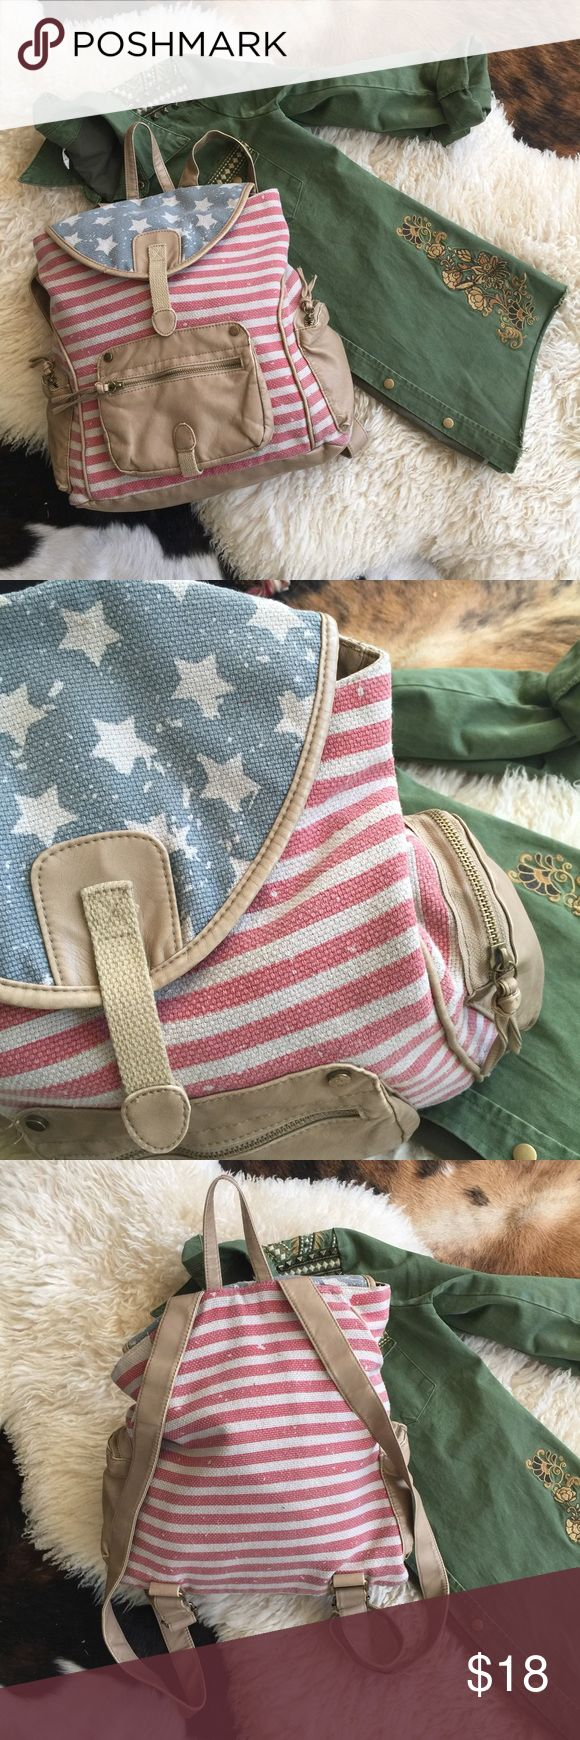 american flag backpack ꊛ unbranded   ꊛ one size  ꊛ lightly used  ☾small american flag backpack with vegan leather trim. purposely distressed print.   ꊛ × no paypal × no trades × be kind, have fun & stay lovely ო  メℴ メℴ Bags Backpacks